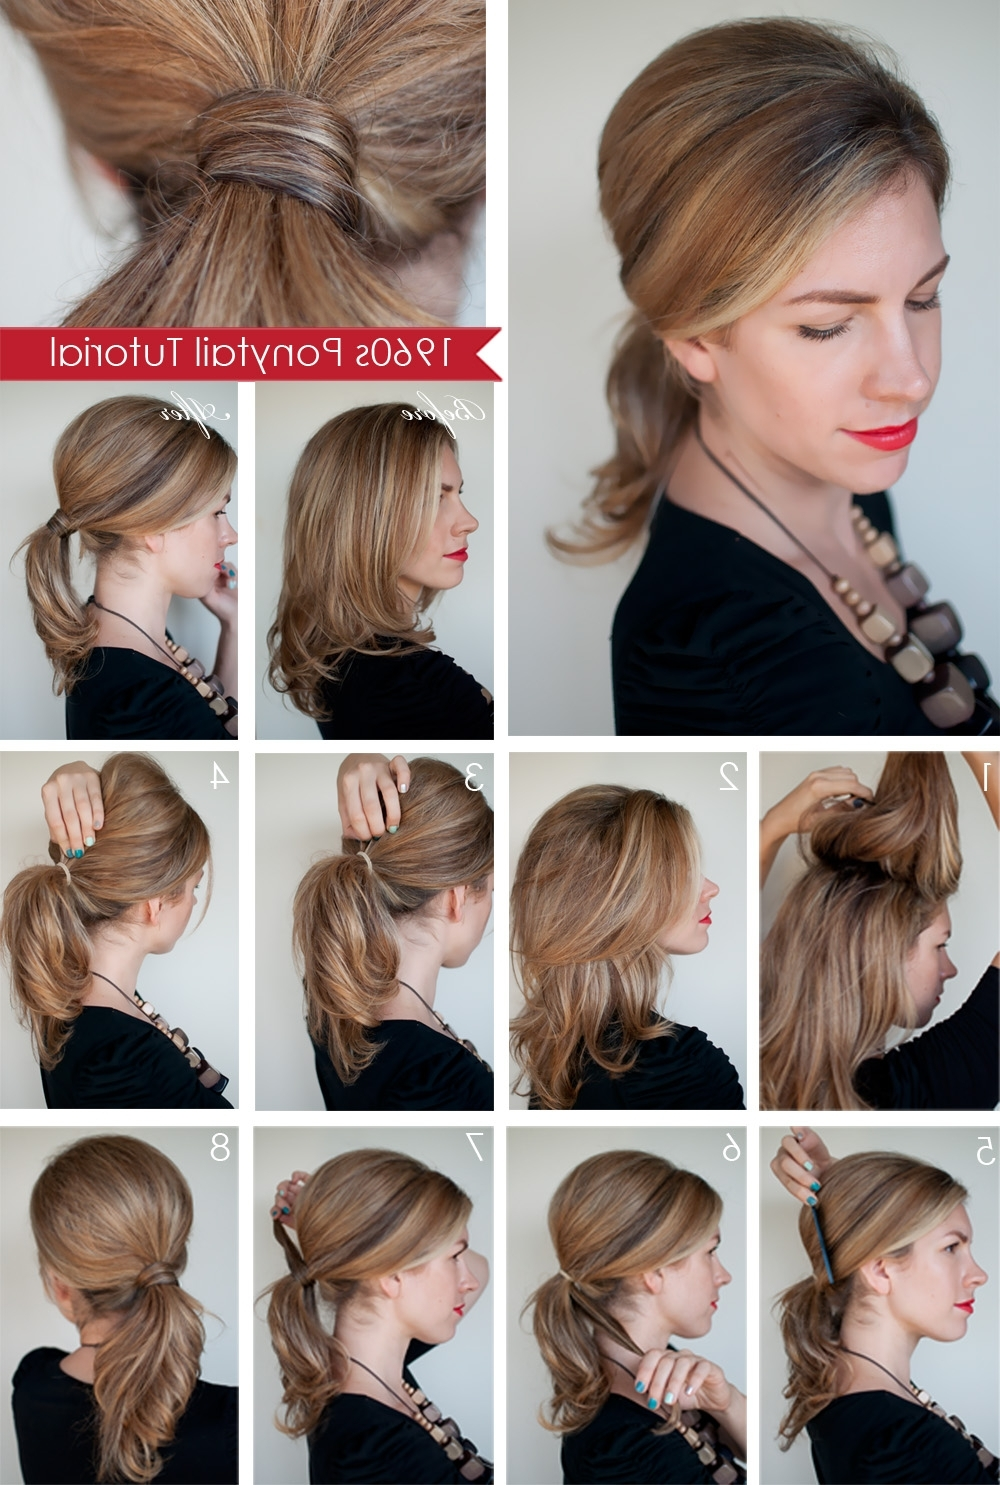 Fashionable Black Ponytail Hairstyles With A Bouffant Regarding Hairstyle How To: Create A 1960s Style Ponytail – Hair Romance (View 7 of 20)